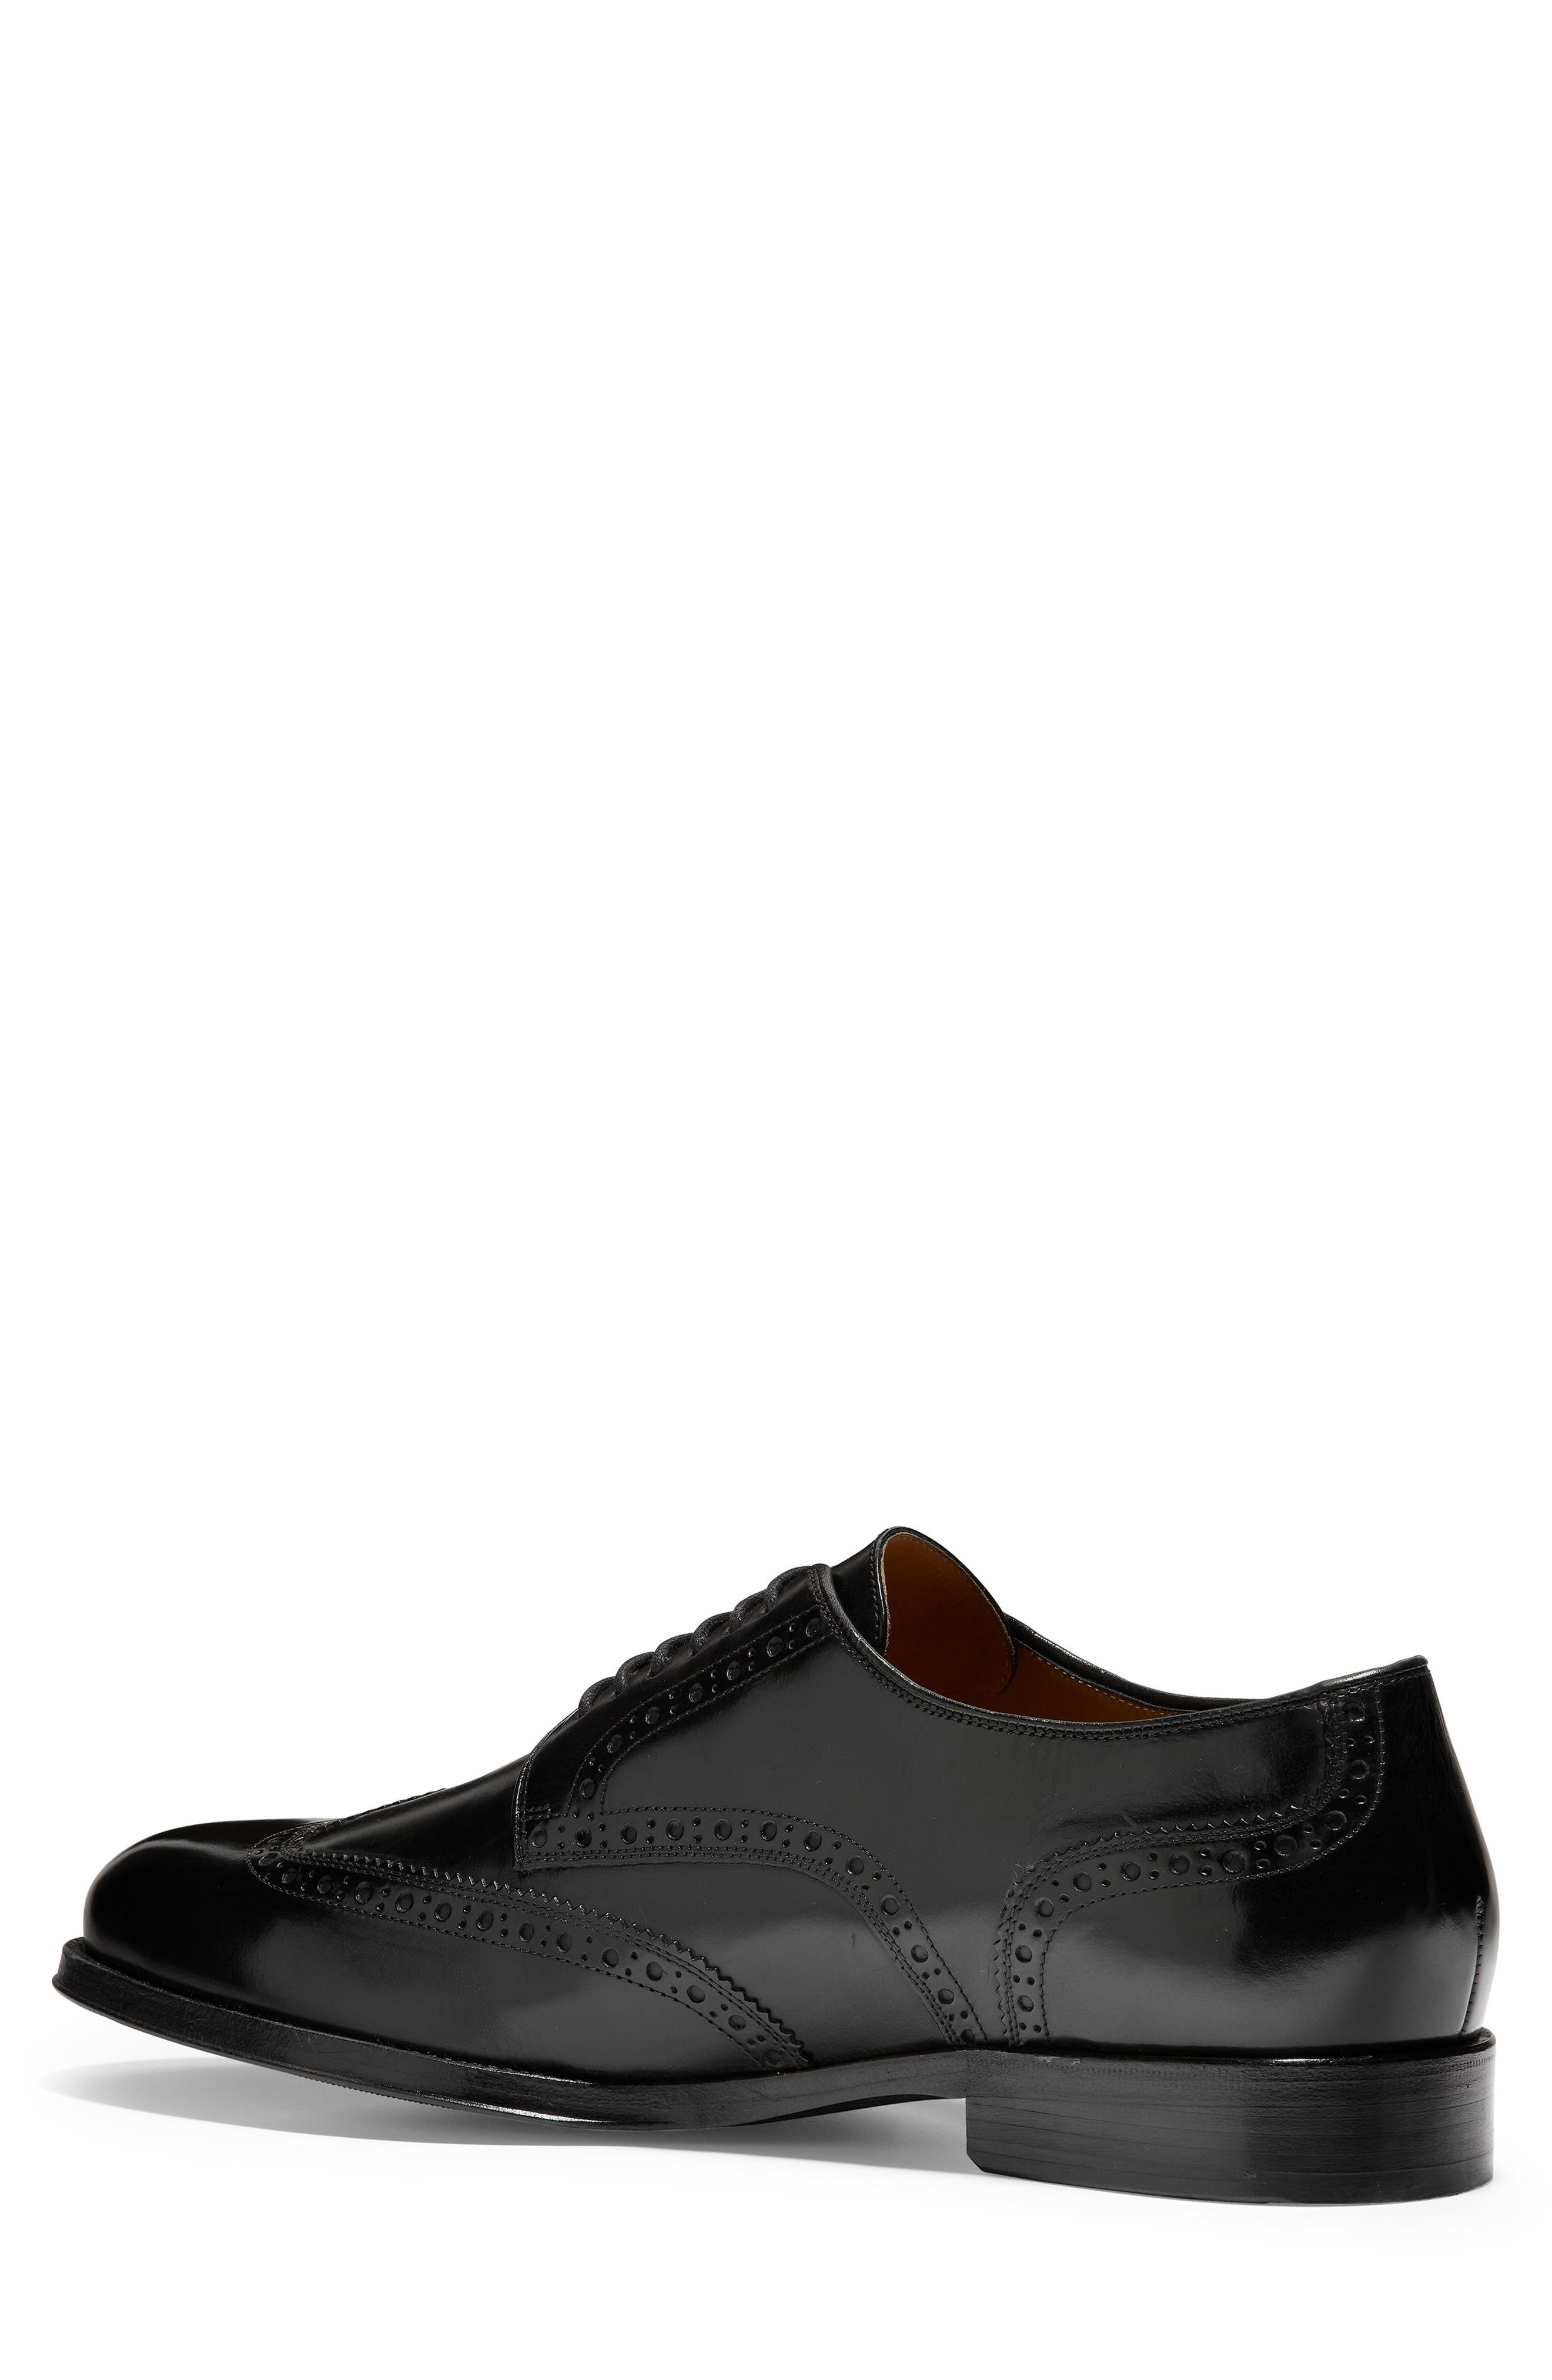 American Classics Grammercy Wingtip,                             Alternate thumbnail 2, color,                             BLACK LEATHER